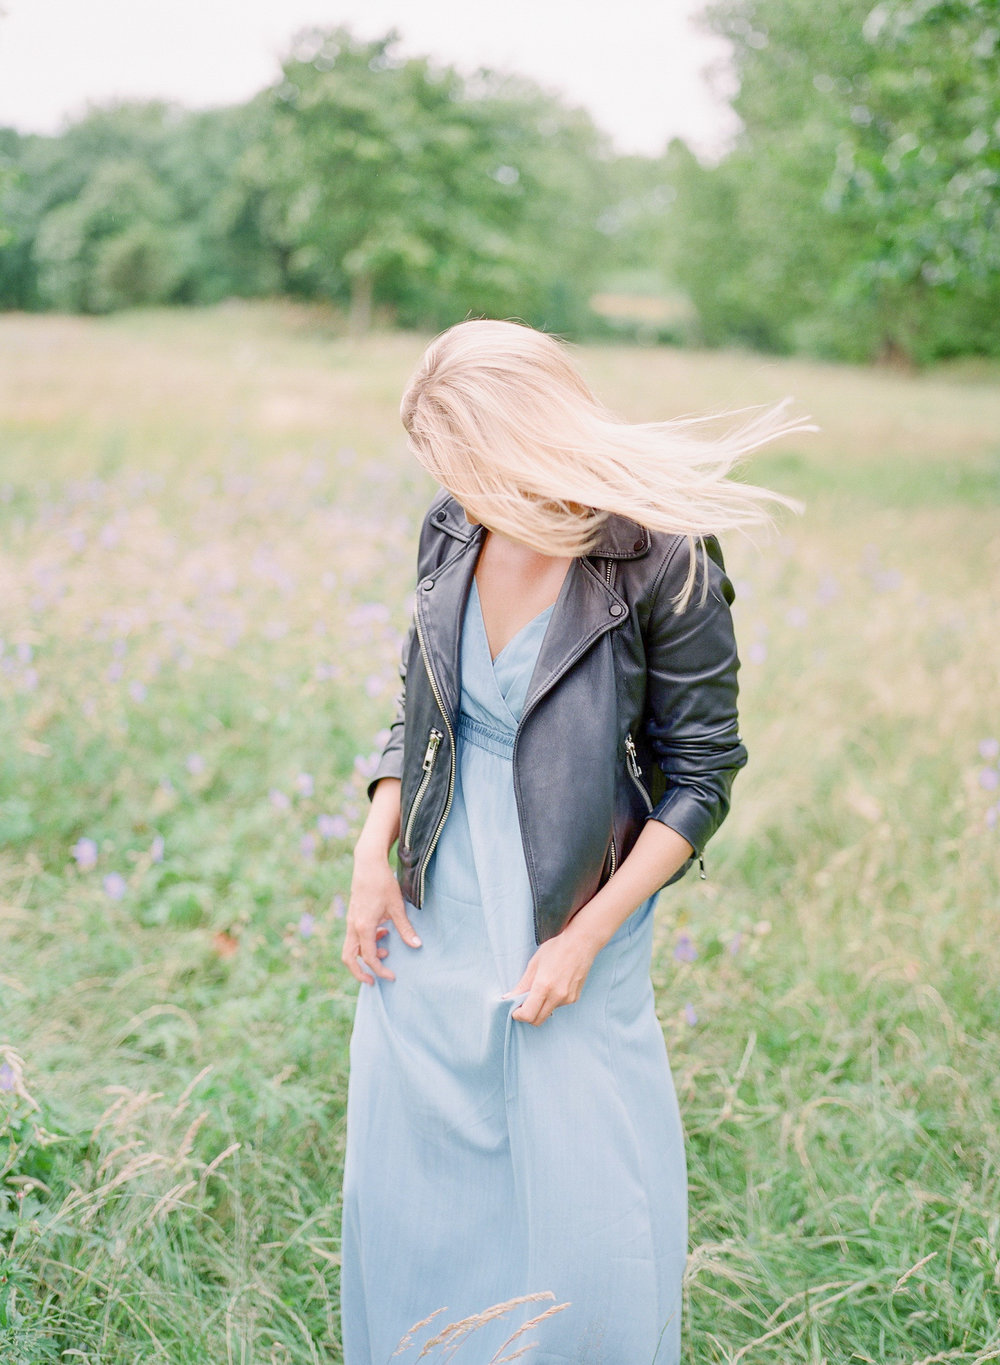 leather jacket and blue dress in london by imogen xiana photography